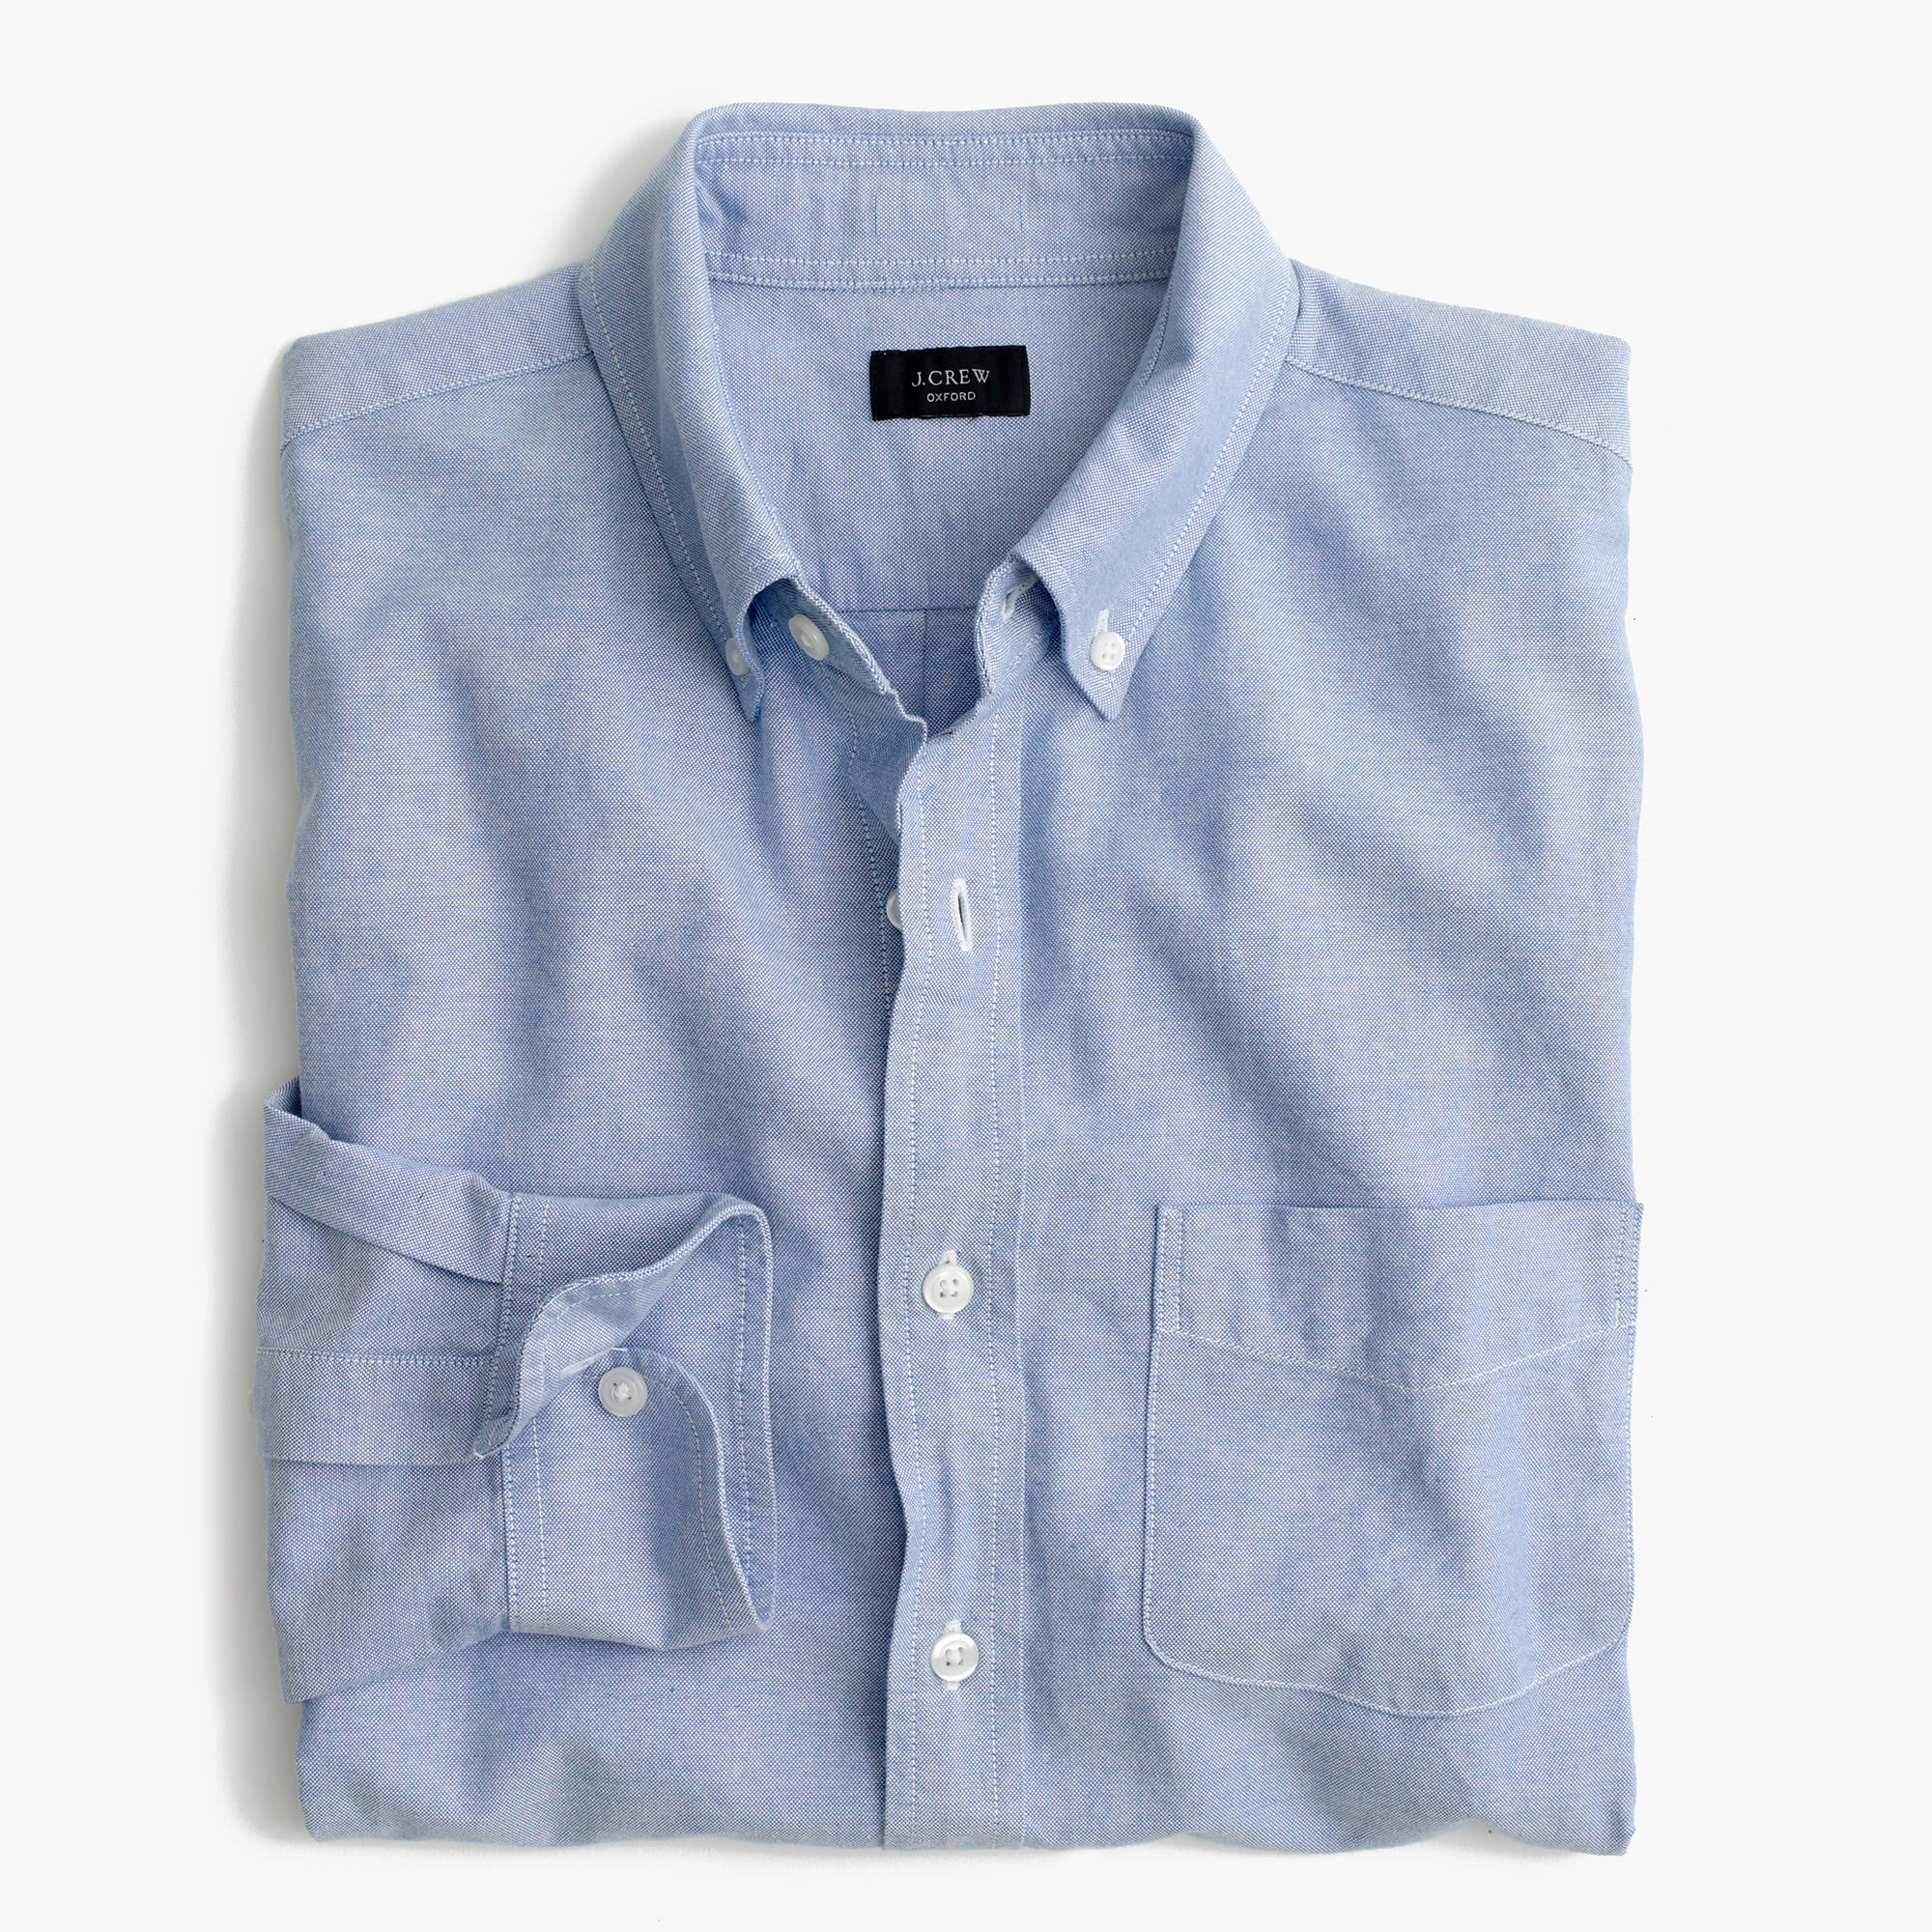 Depend on shopnow-jl6vb8f5.ga for Men's button-down shirts and Men's dress shirts that fit your.